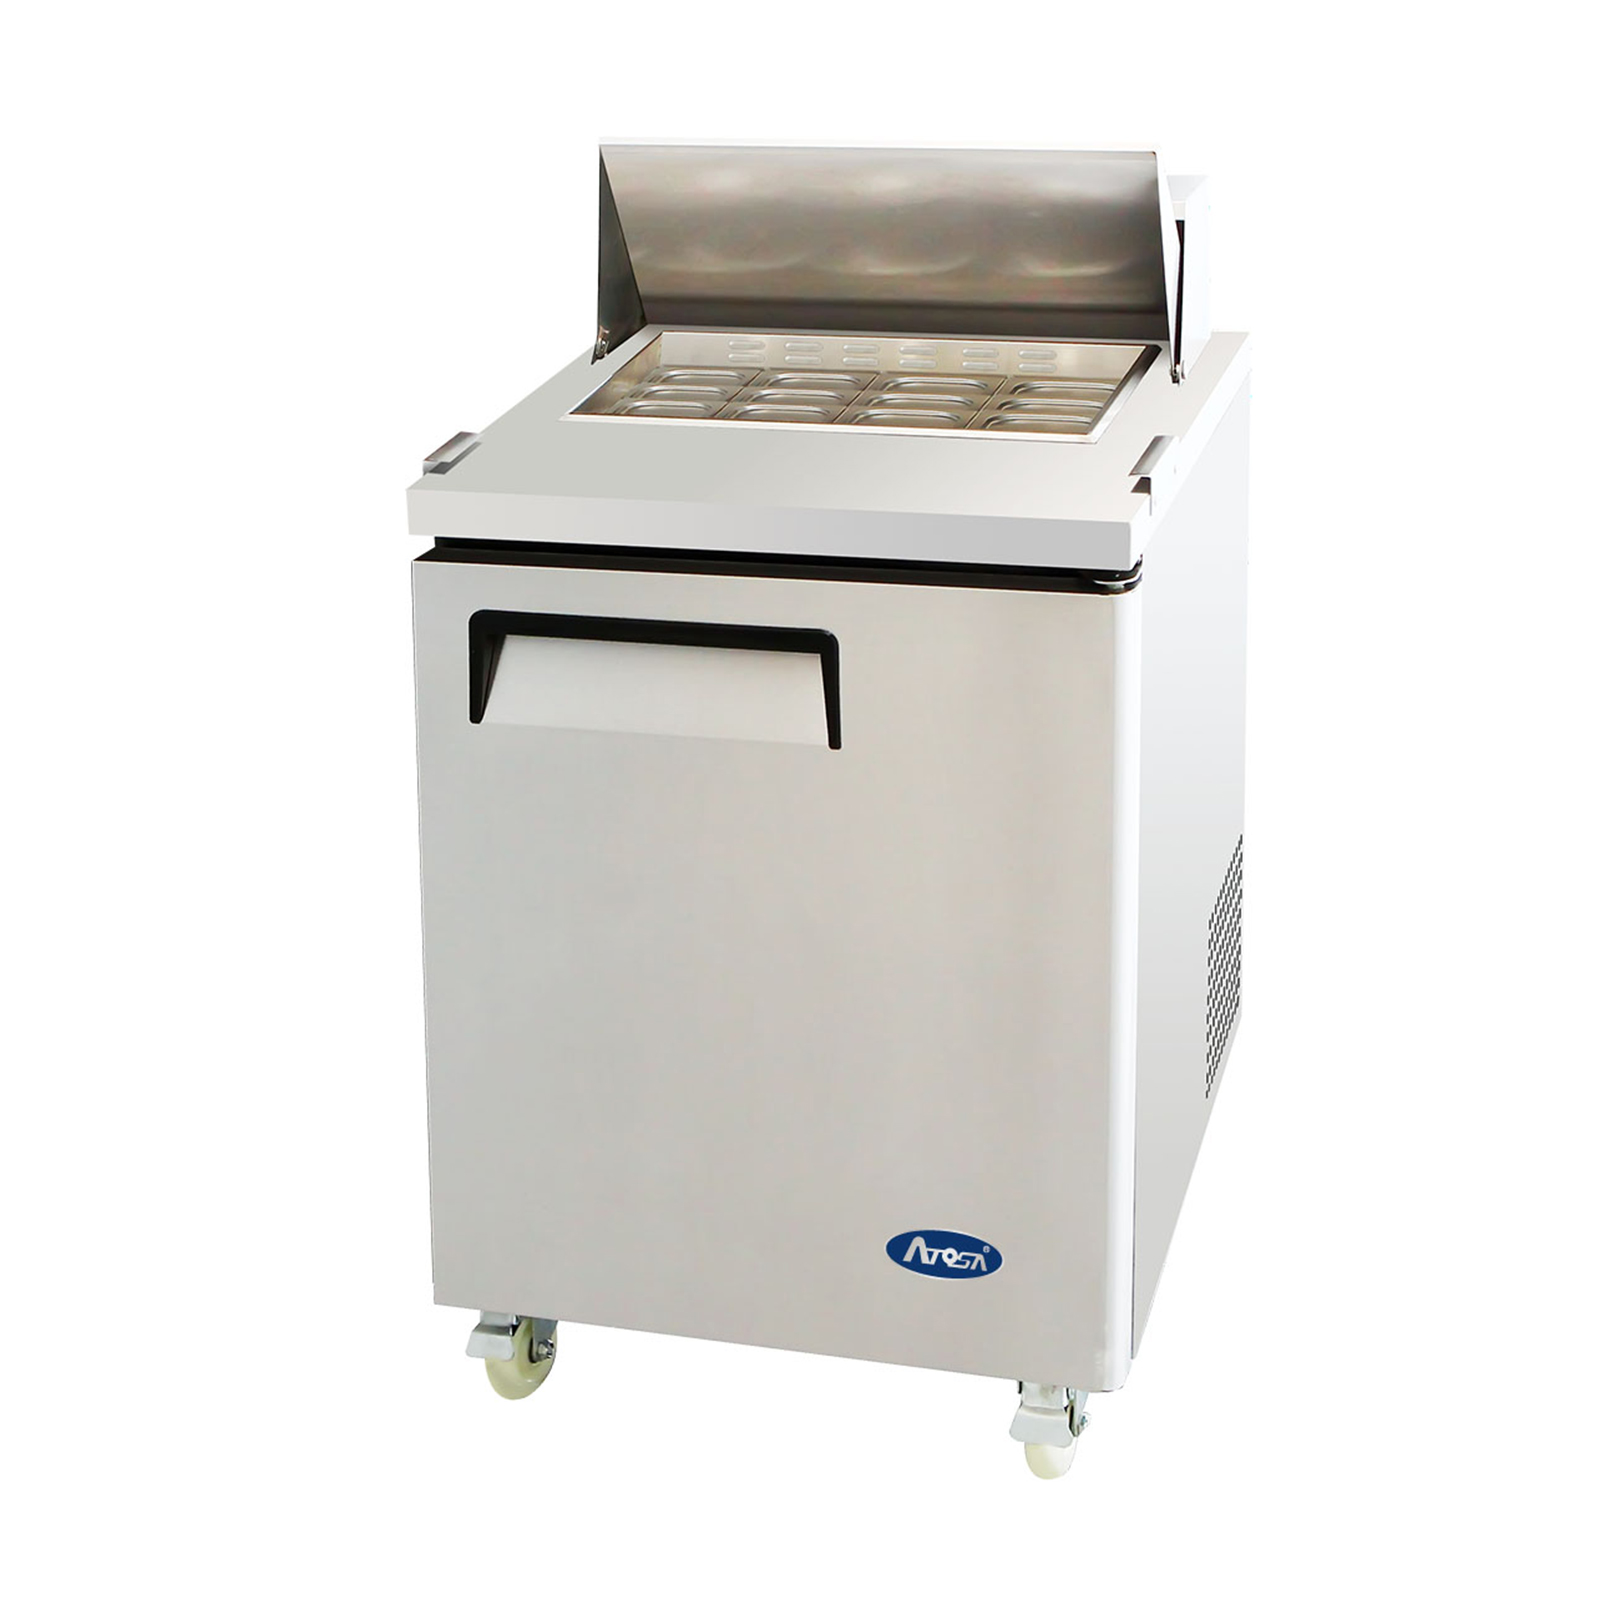 Atosa USA MSF8305GR refrigerated counter, mega top sandwich / salad unit